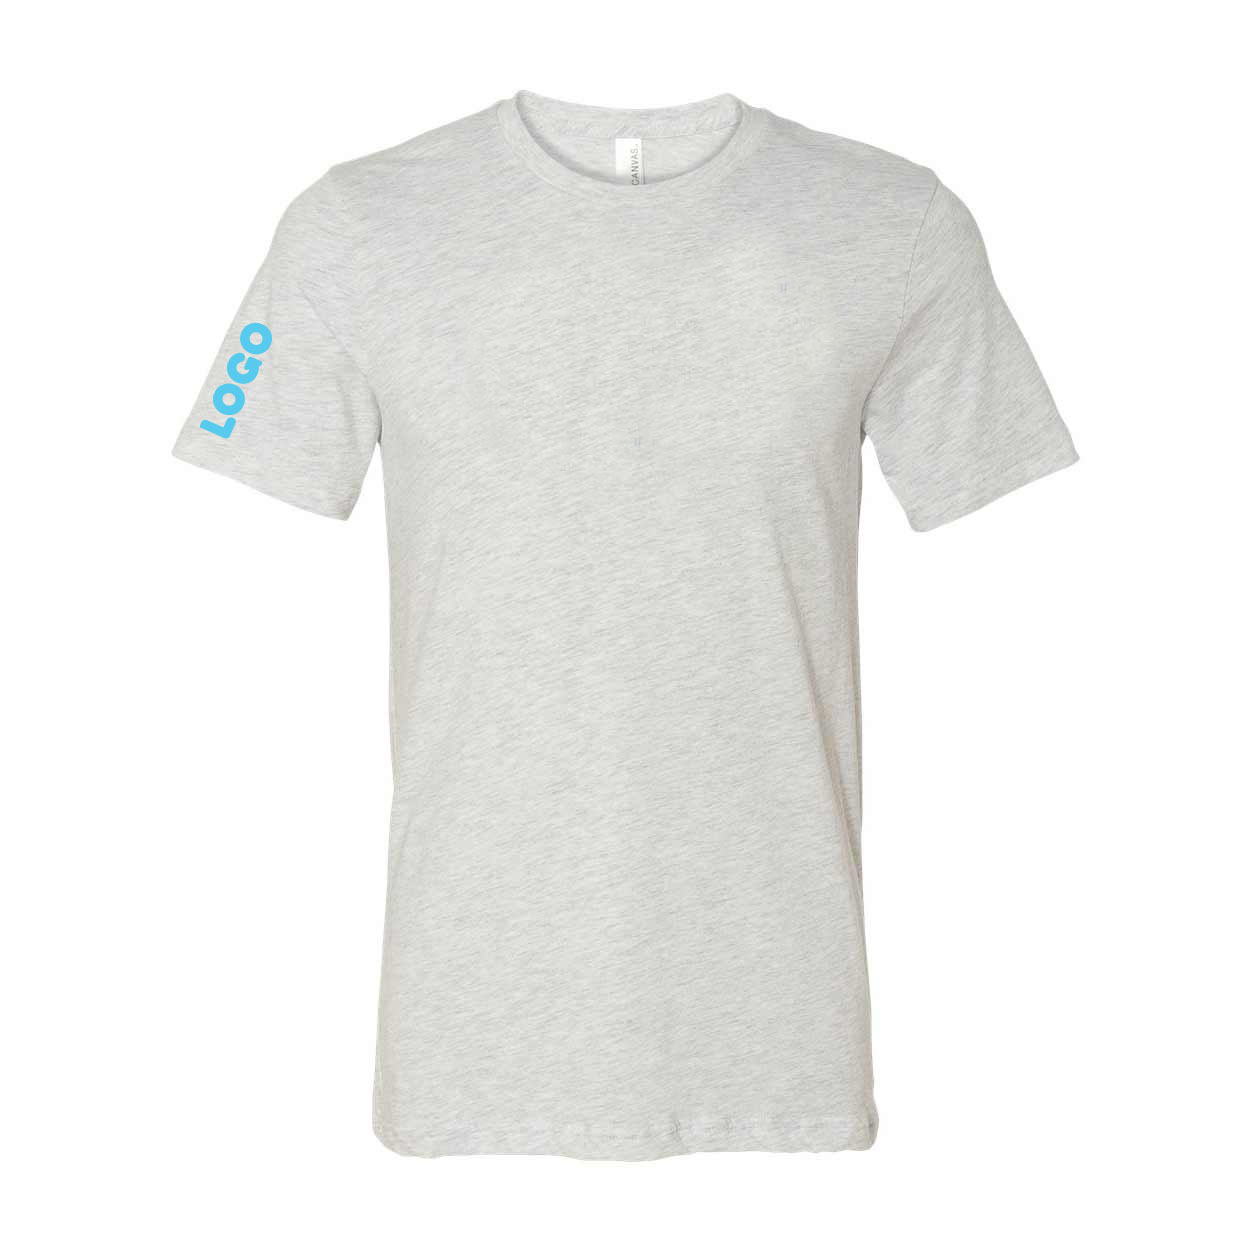 134754 jersey t shirt one color screen